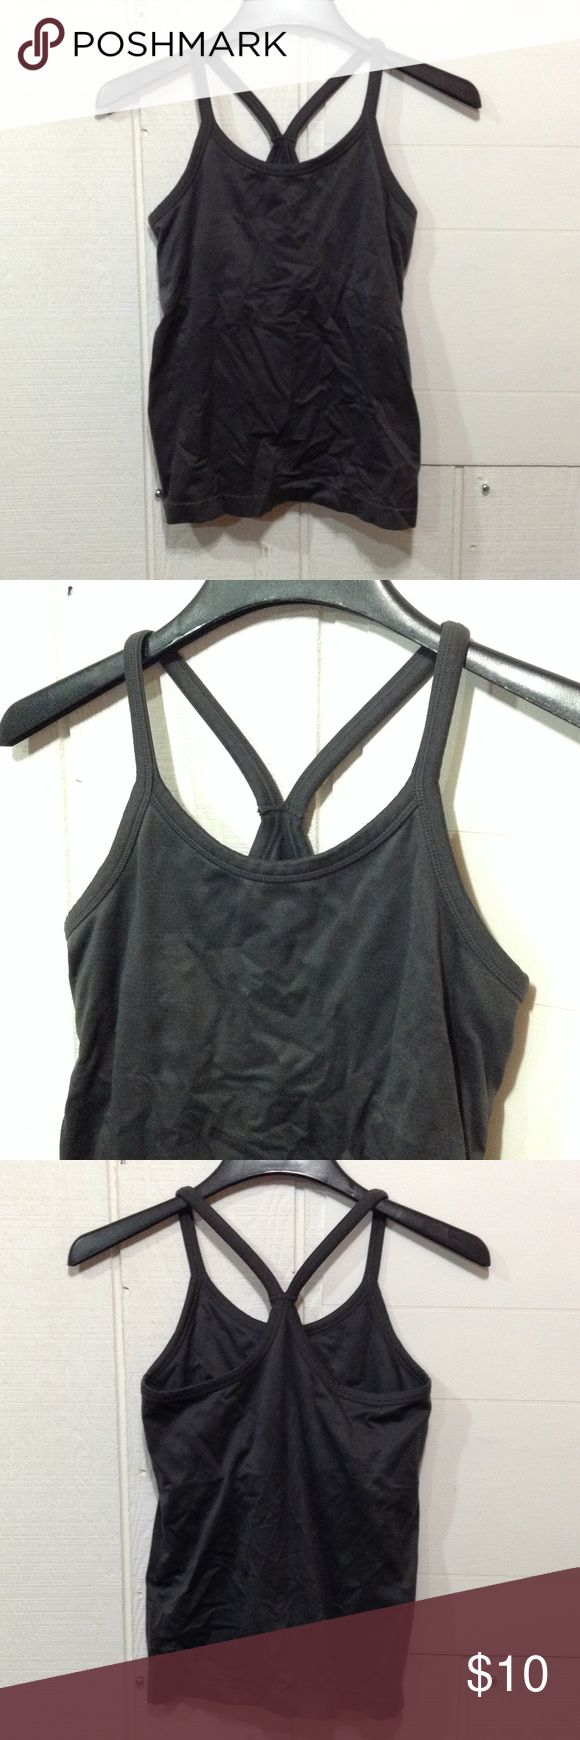 "Gray Athletic Tank Gray. Athletic tank. In good condition! Built-in sports bra. Brand and size unknown. Fits like a medium. Measurements Middle of neckline to bottom: 17"". Top of strap to very bottom: 23"". Tops Tank Tops"